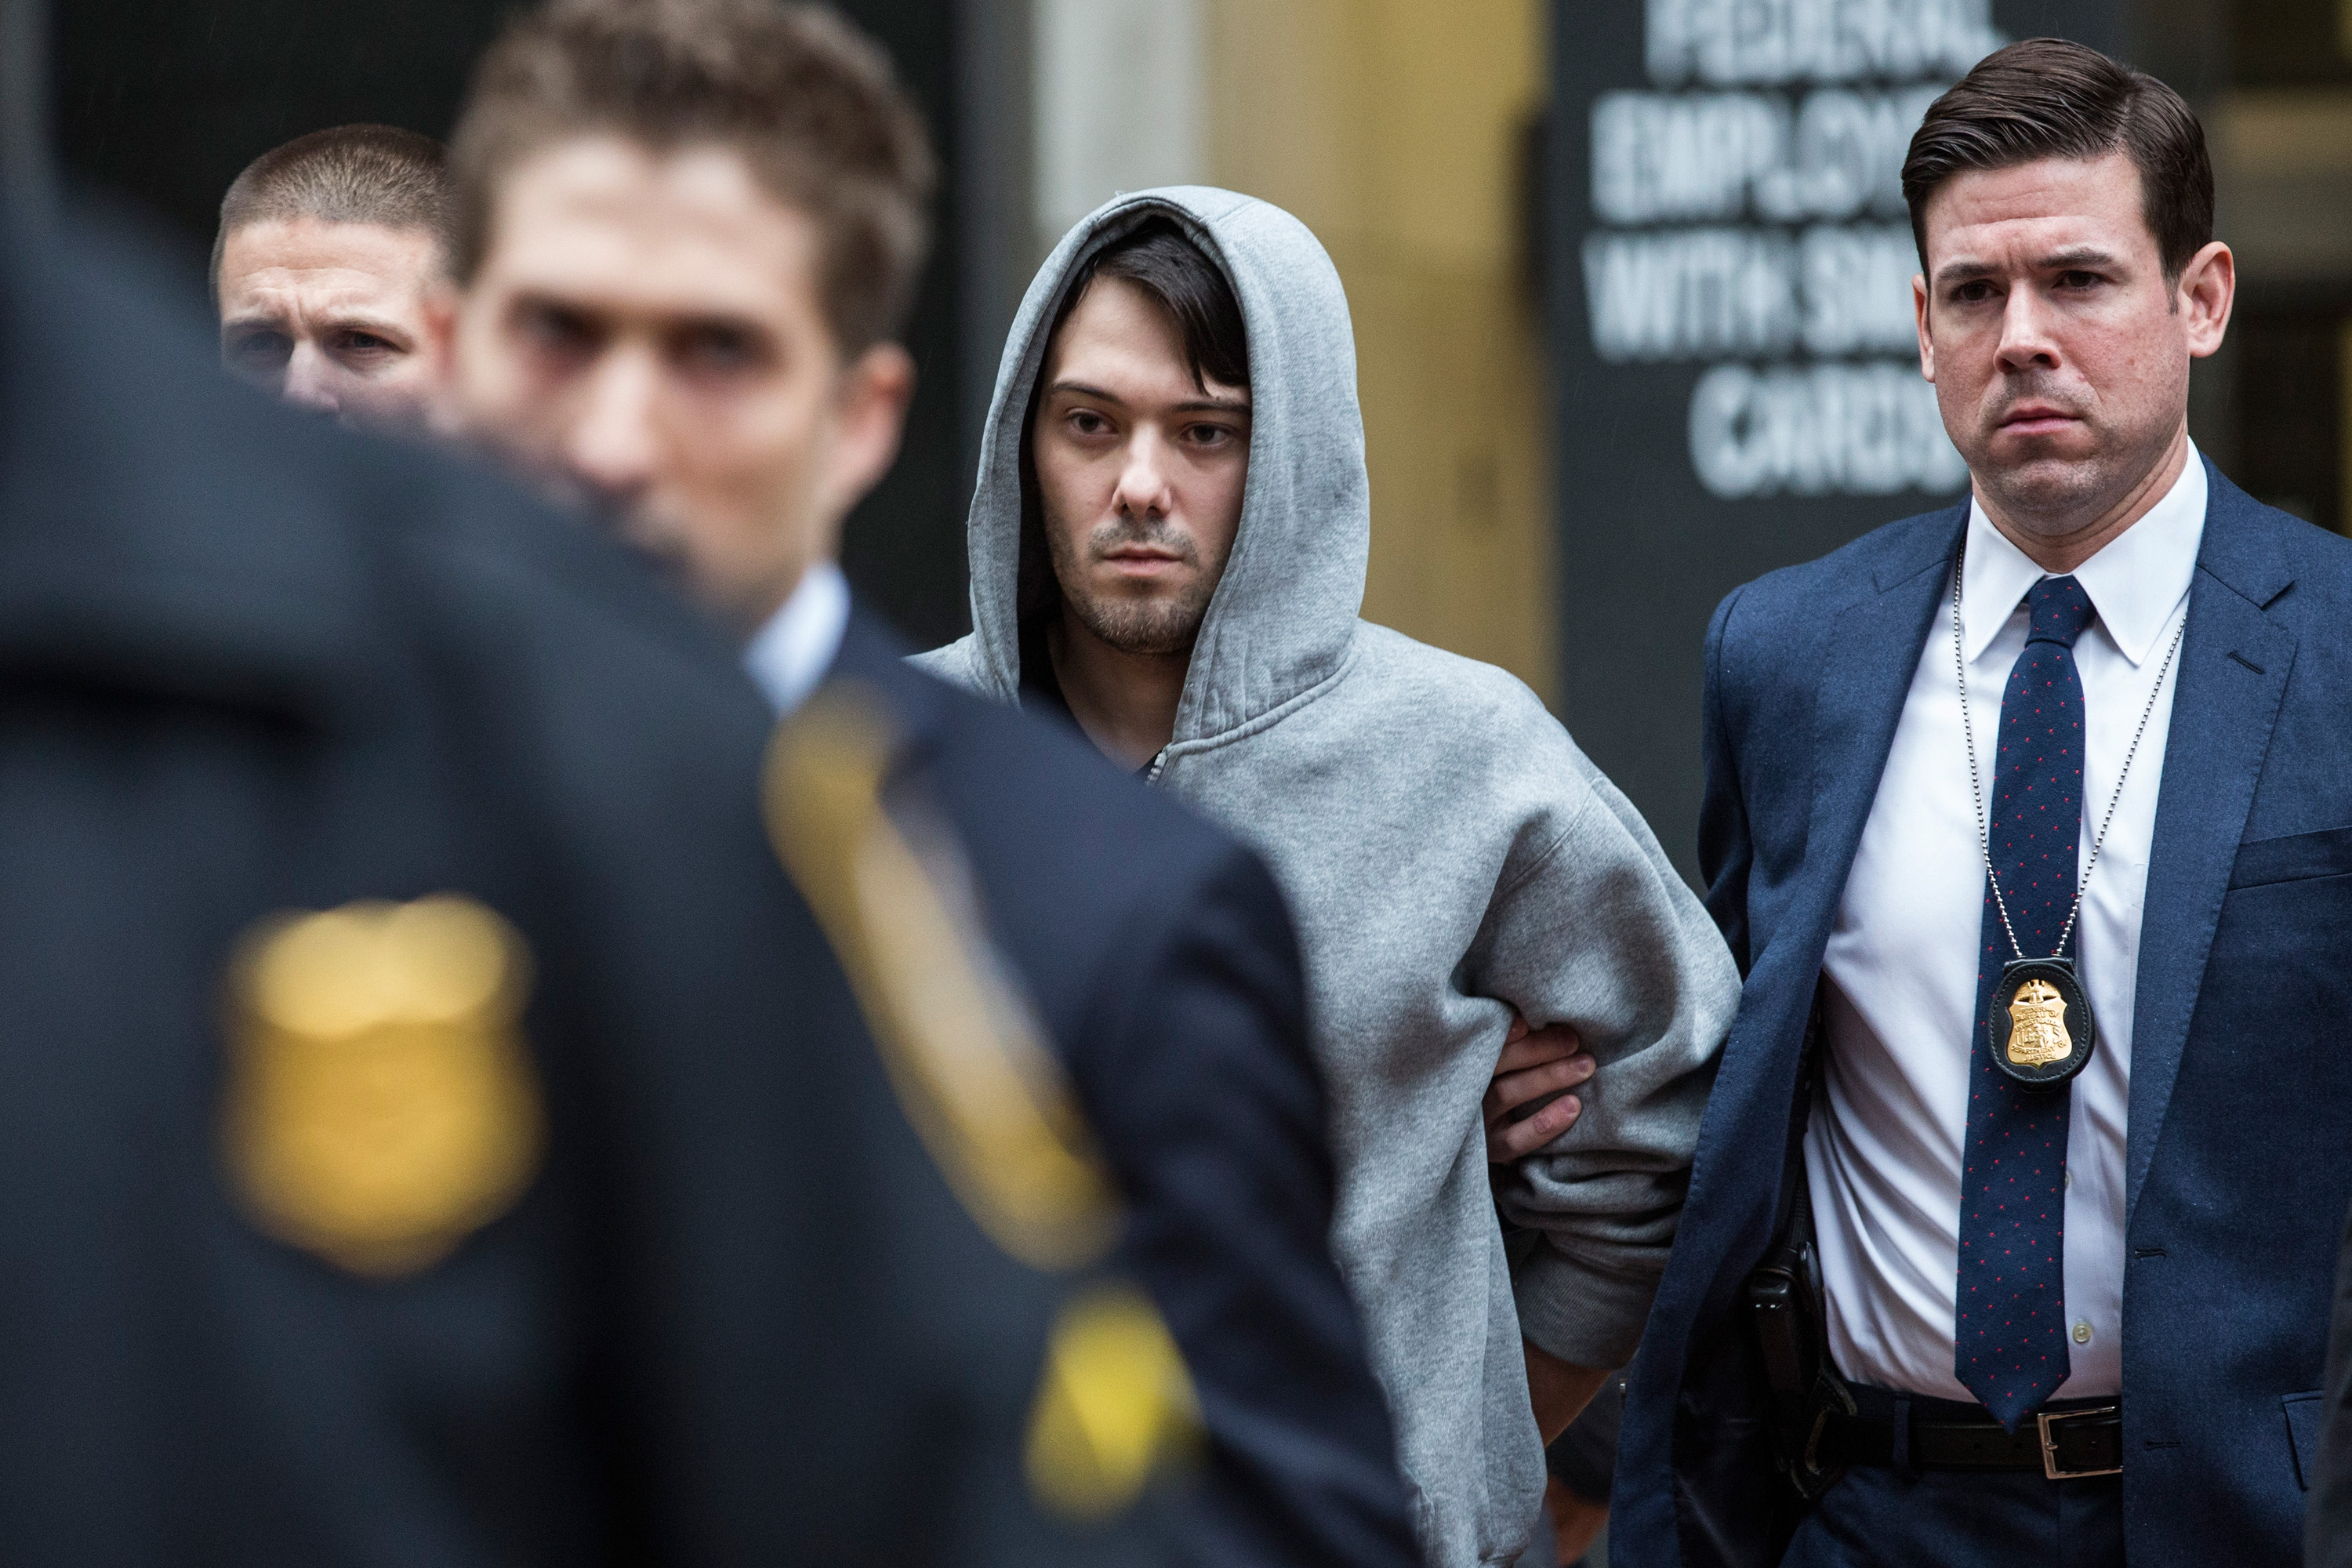 Shkreli was CEO of KaloBios for about a month before his arrest.